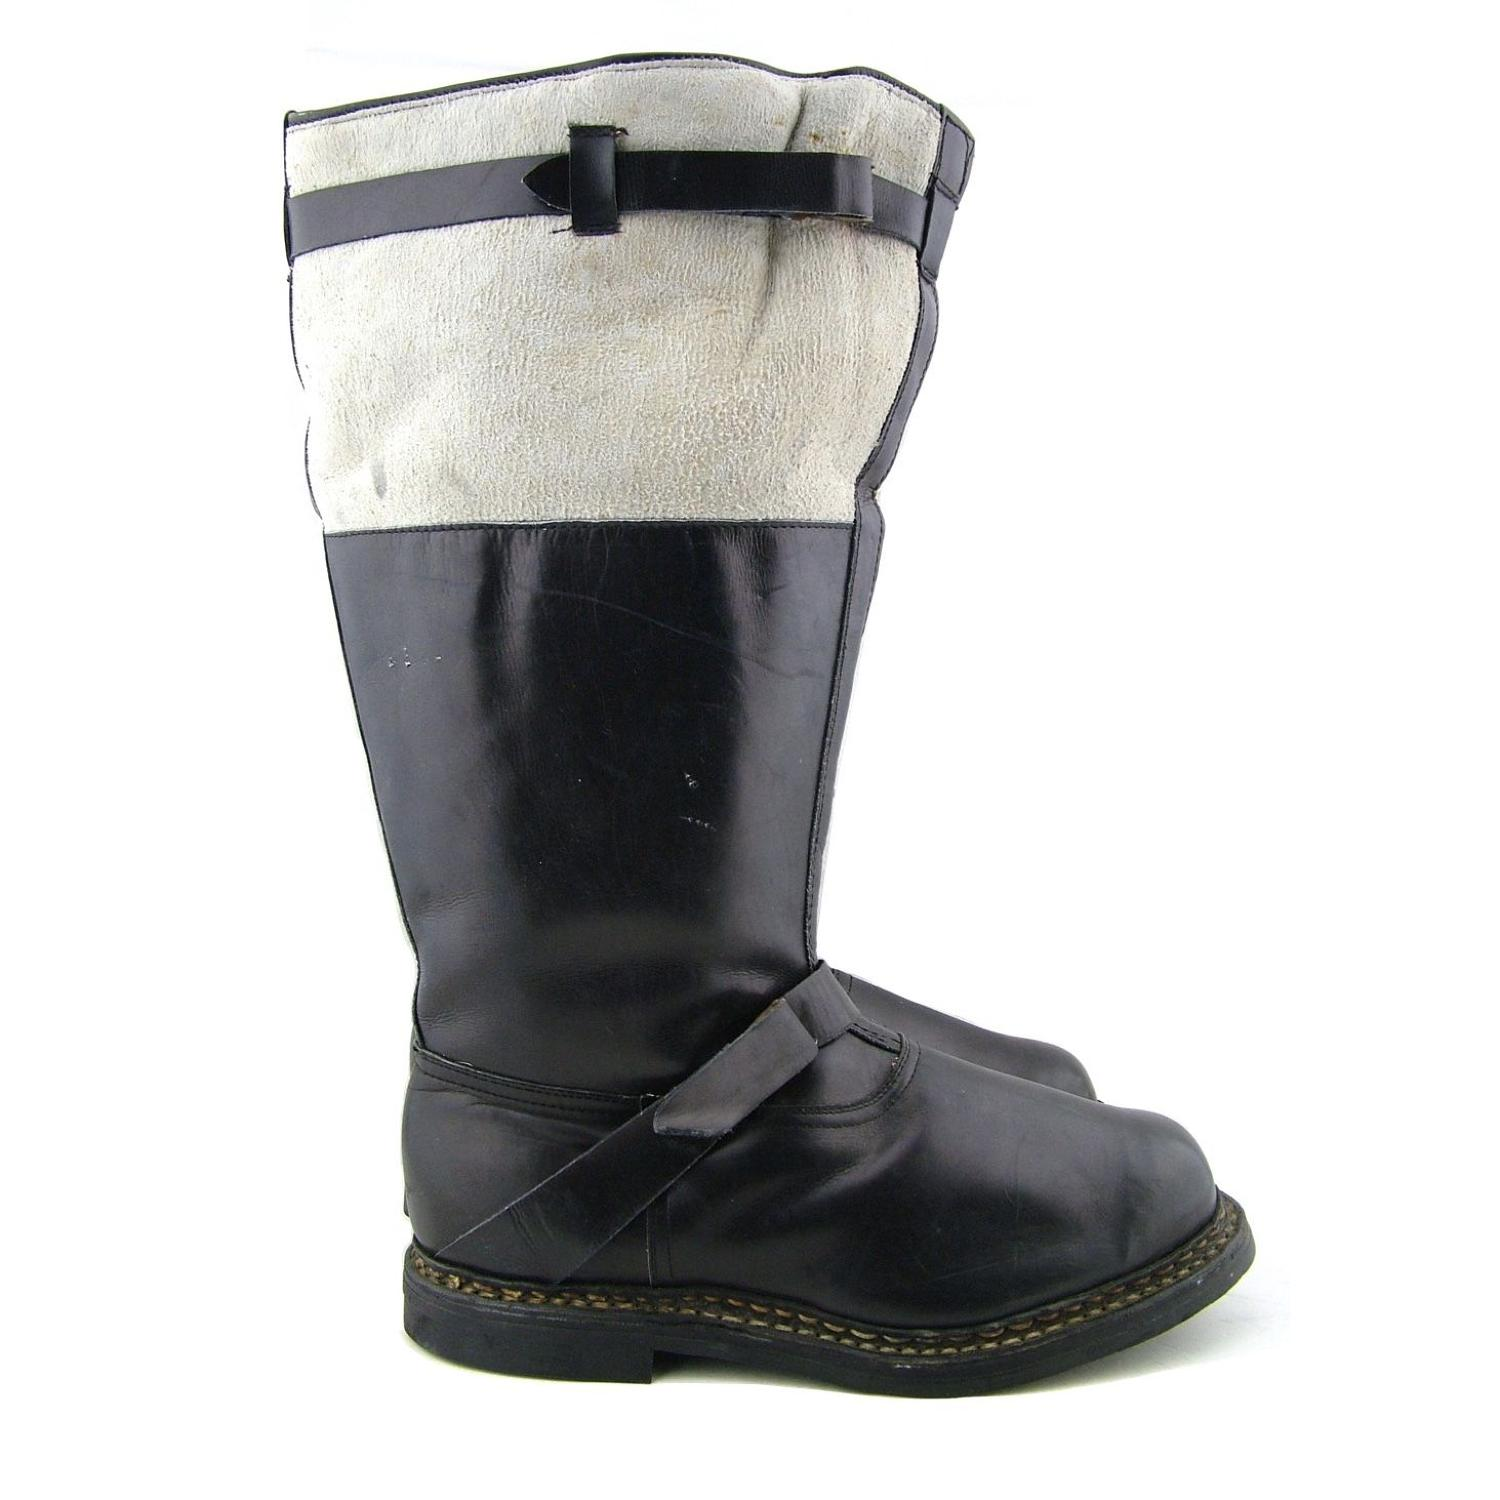 Luftwaffe single-zip flying boots